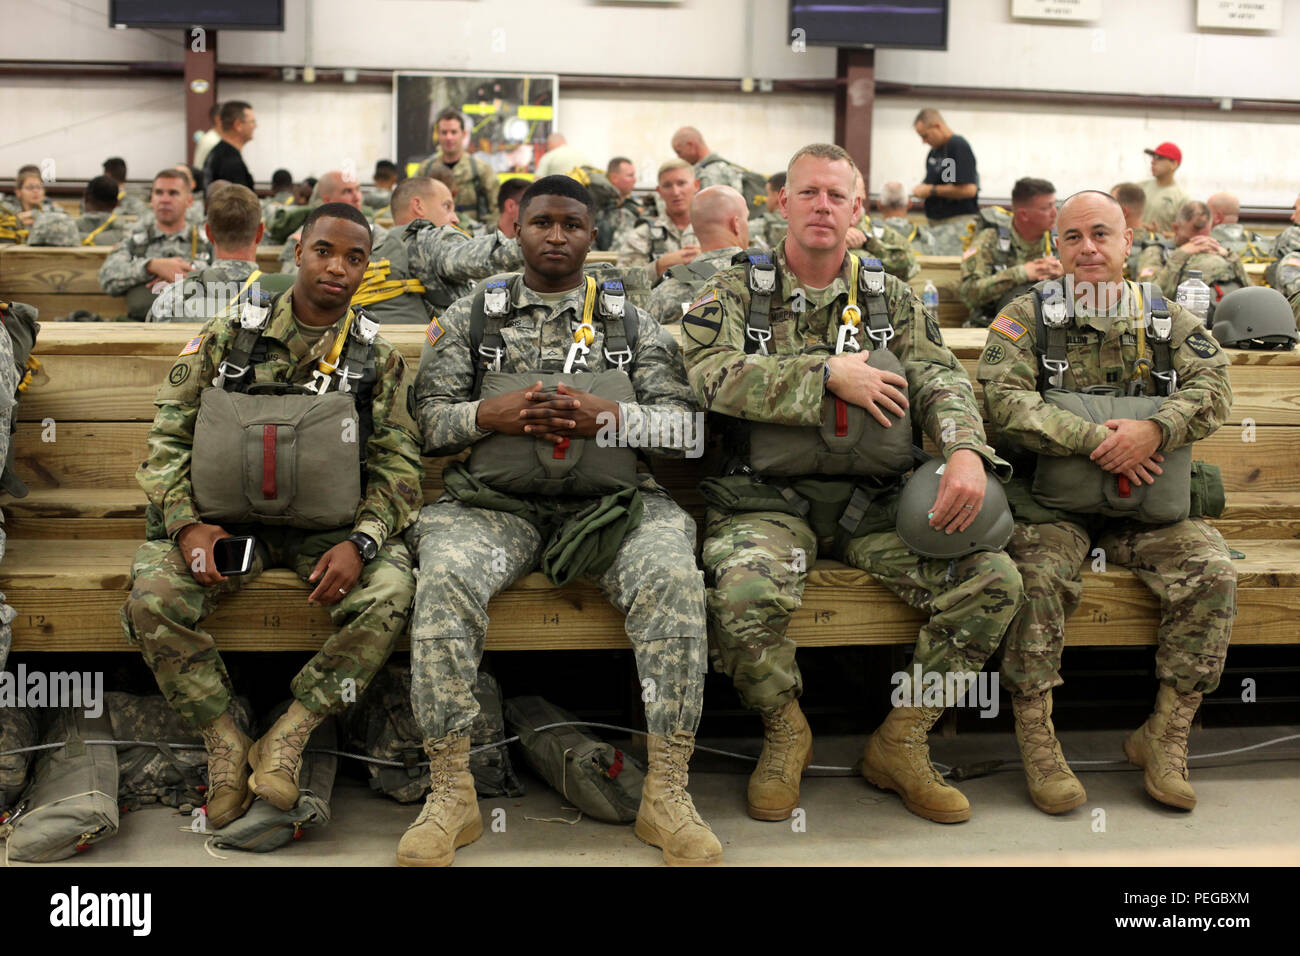 f9506c67b0d03 U.S Army paratroopers from the 982nd Combat Camera Company wait to  participate in a jump commemorating